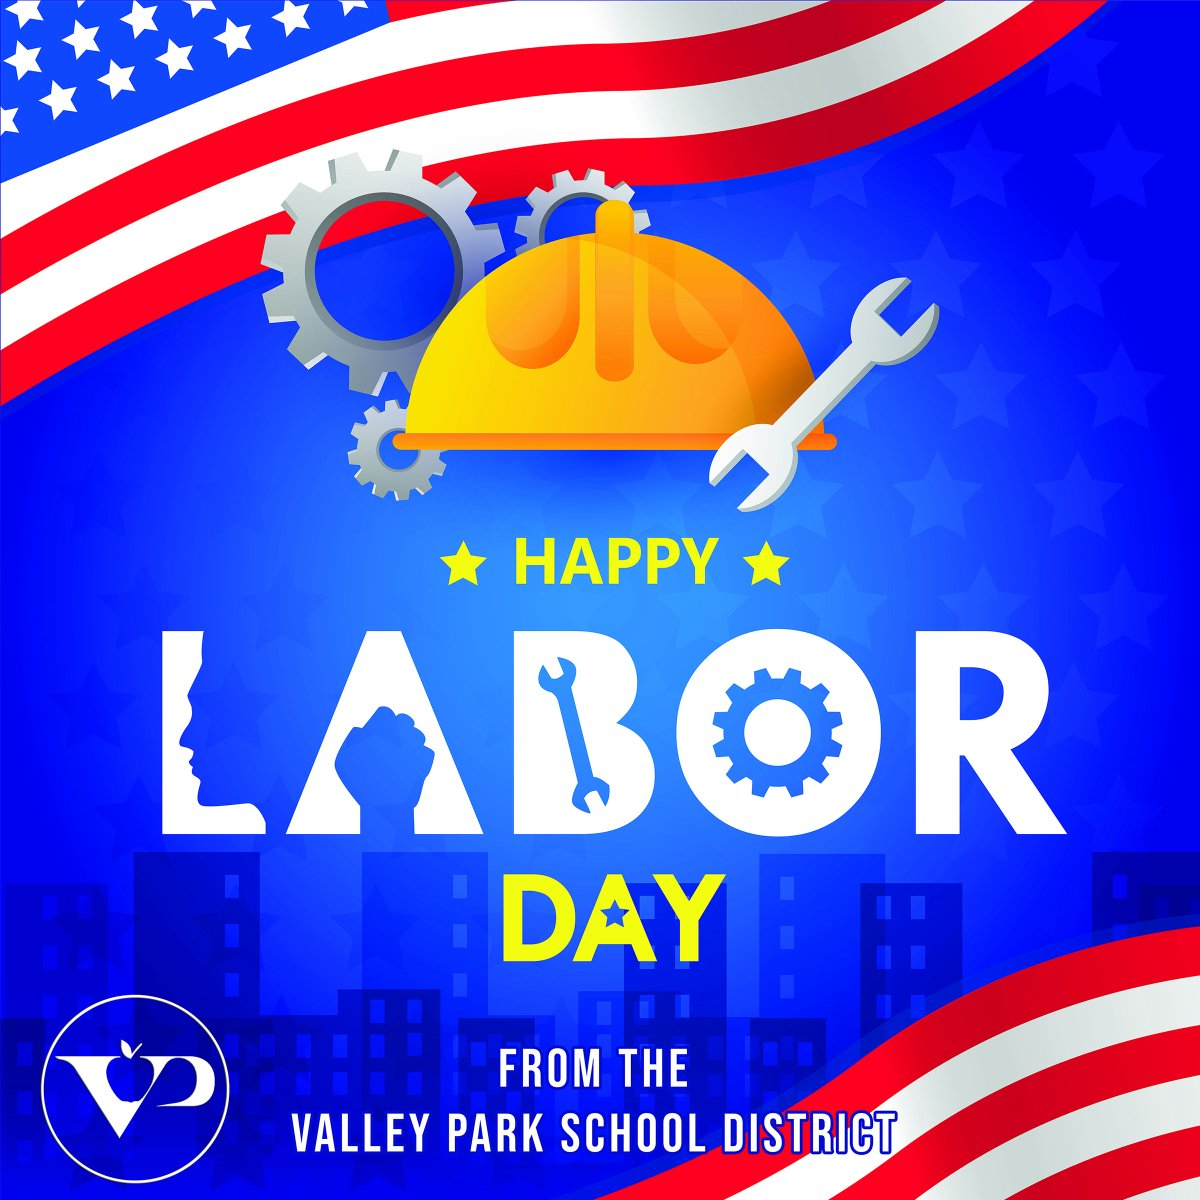 There is no substitute for hard work! Happy Labor Day to our Valley Park Community. #VPpride #ValleyParkSD